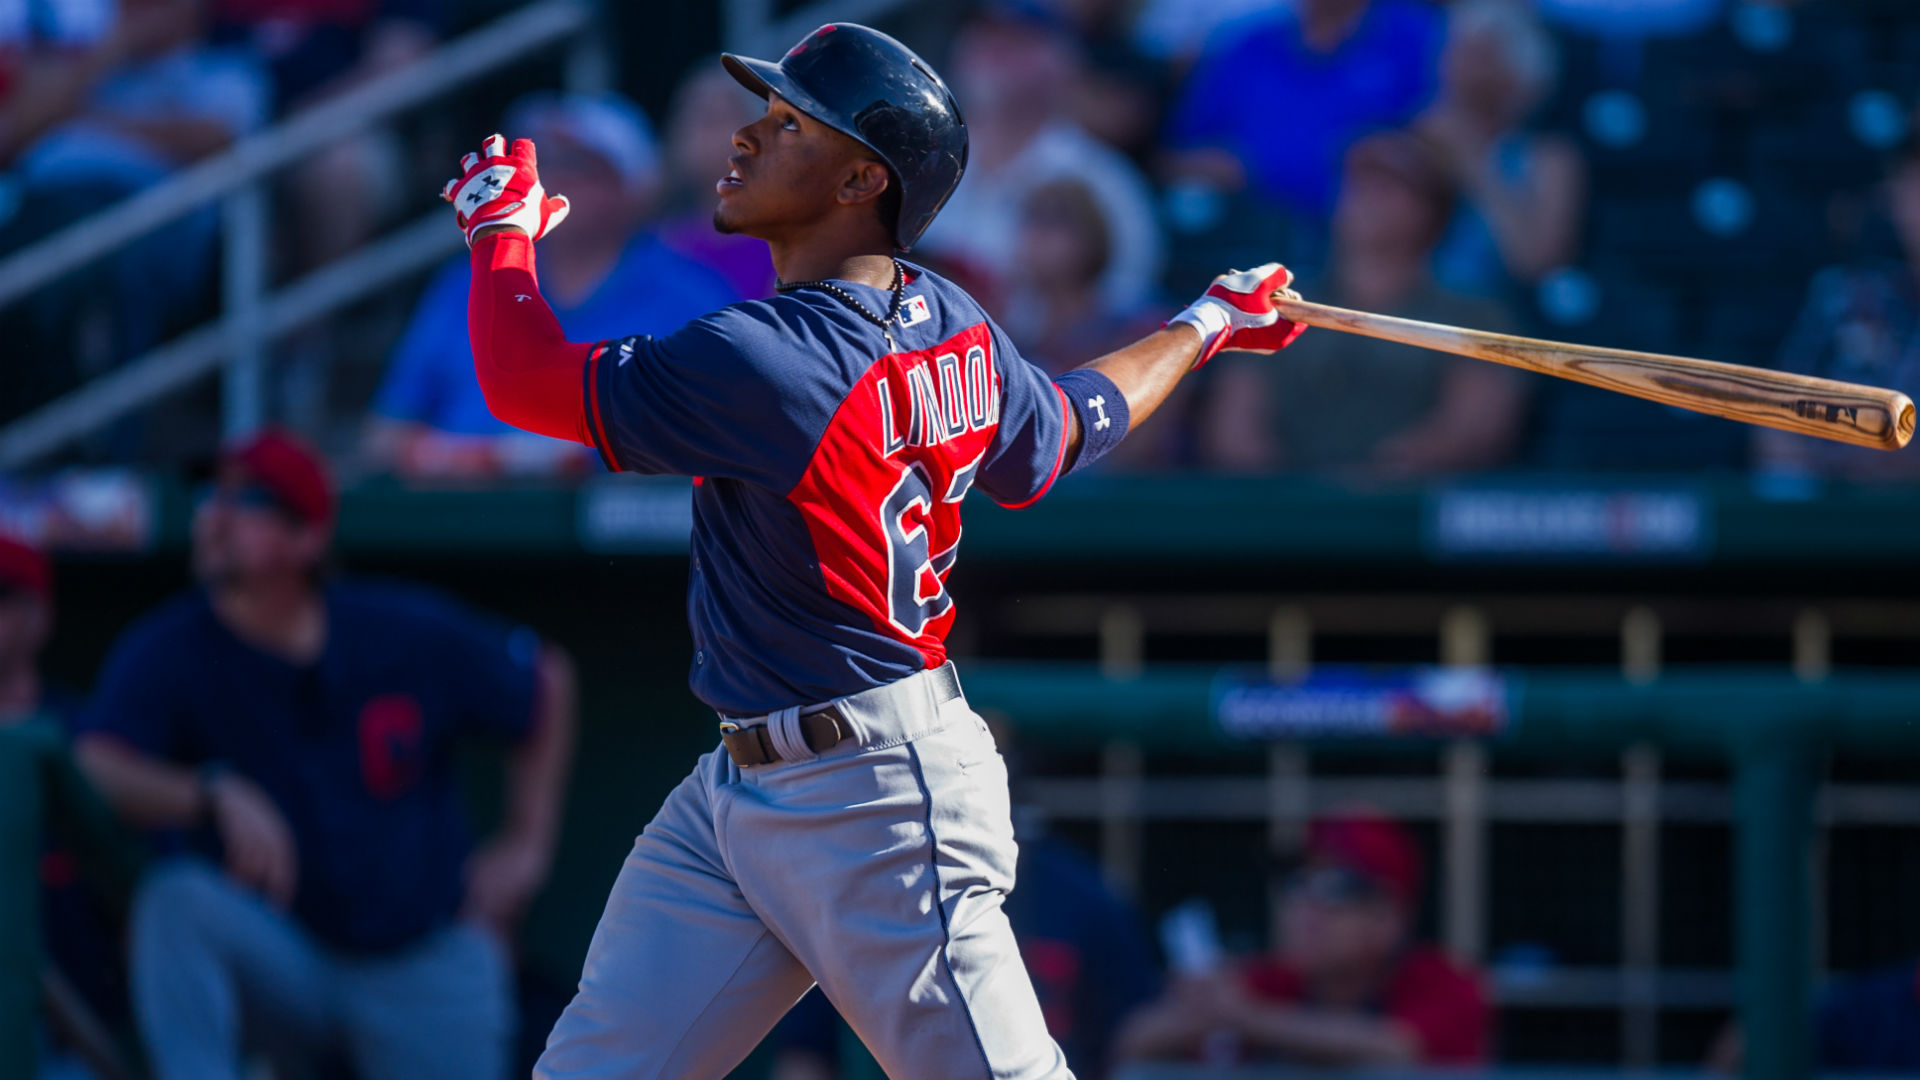 Scouting the Prospects: Lindor, Castillo highlight next wave of call-ups